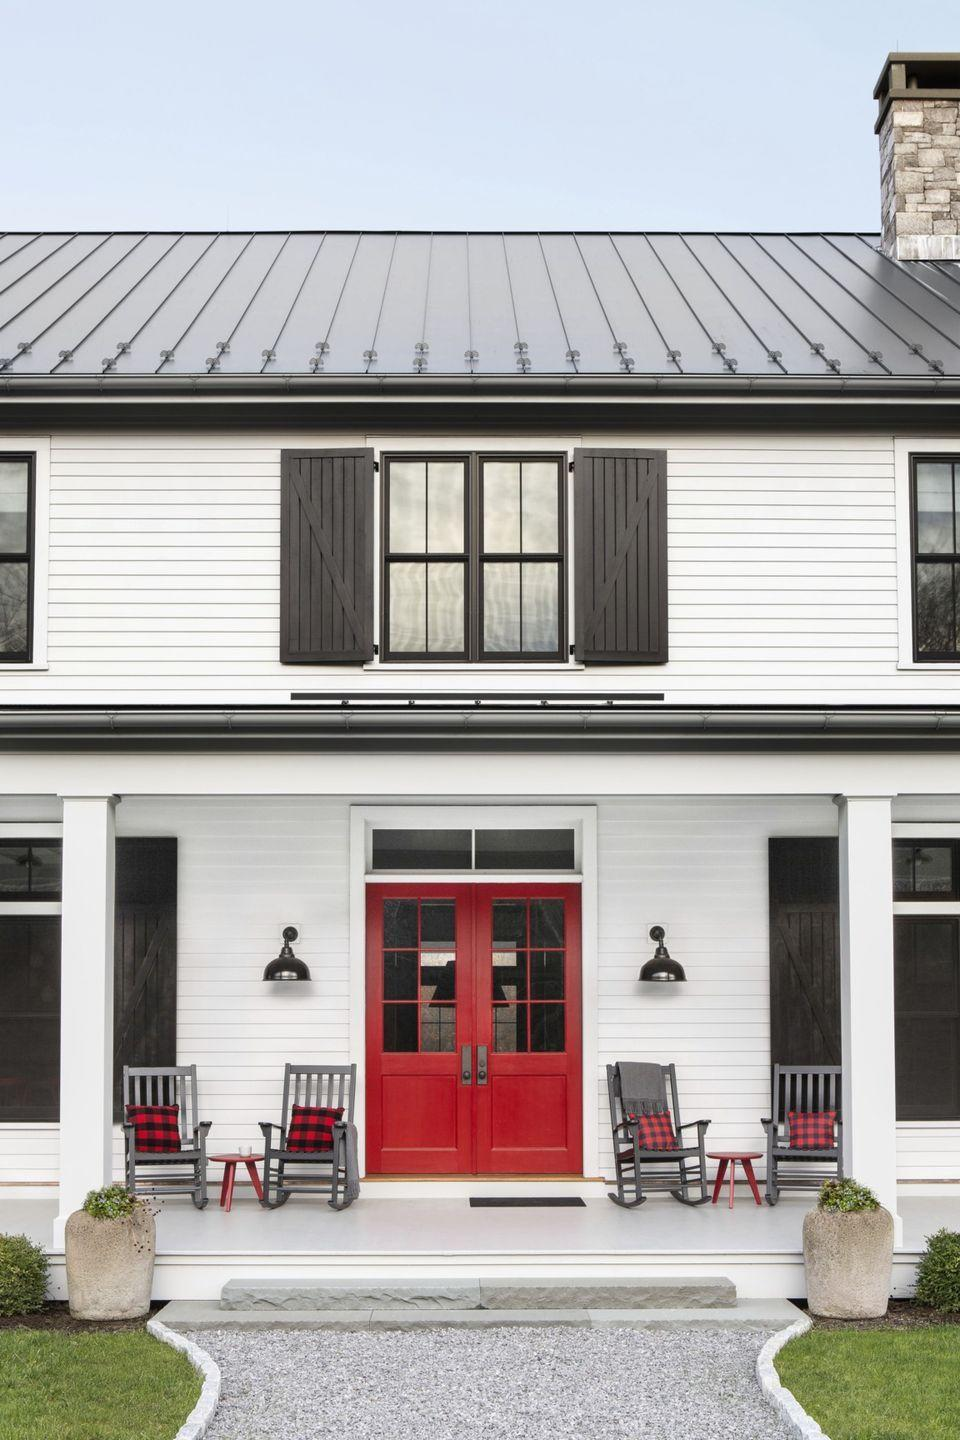 """<p>Take a simple approach by sticking to white and black and adding a stark pop of color with this playful red.</p><p><a class=""""link rapid-noclick-resp"""" href=""""https://www.benjaminmoore.com/en-us/color-overview/find-your-color/color/pm-18/heritage-red"""" rel=""""nofollow noopener"""" target=""""_blank"""" data-ylk=""""slk:SHOP HERITAGE RED BY BENJAMIN MOORE"""">SHOP HERITAGE RED BY BENJAMIN MOORE</a></p>"""